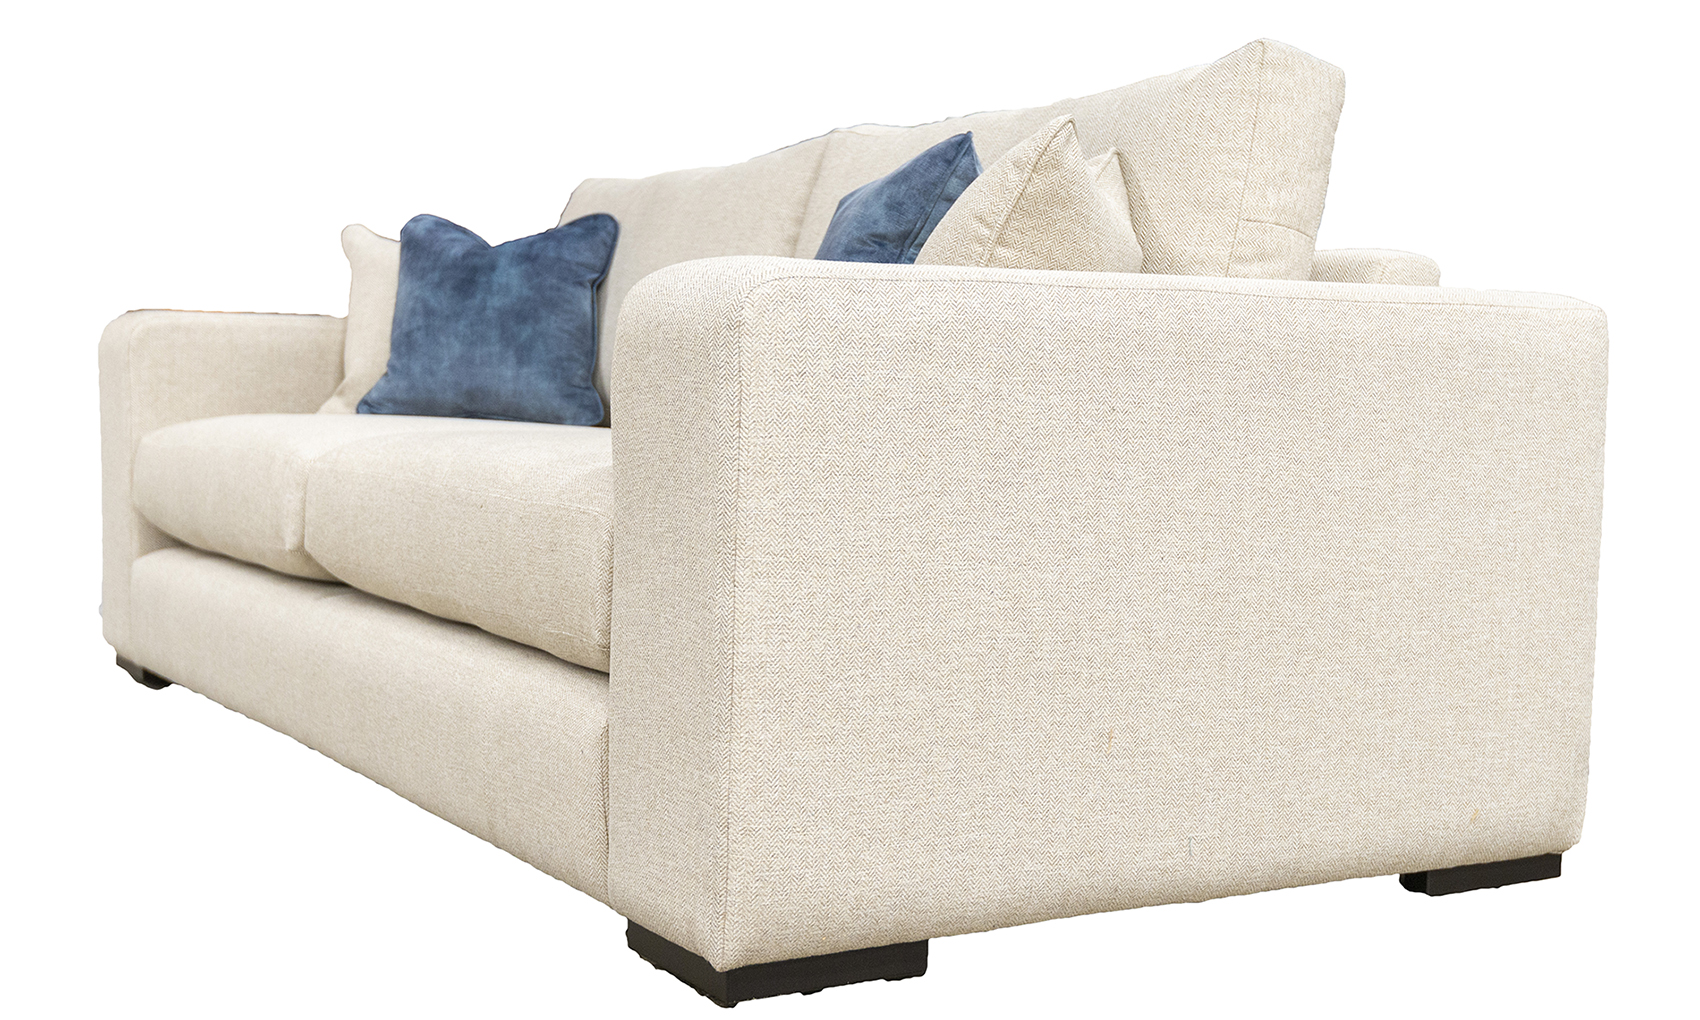 Colordao 3 Seater Sofa in Port Honey, Silver Collection Fabric